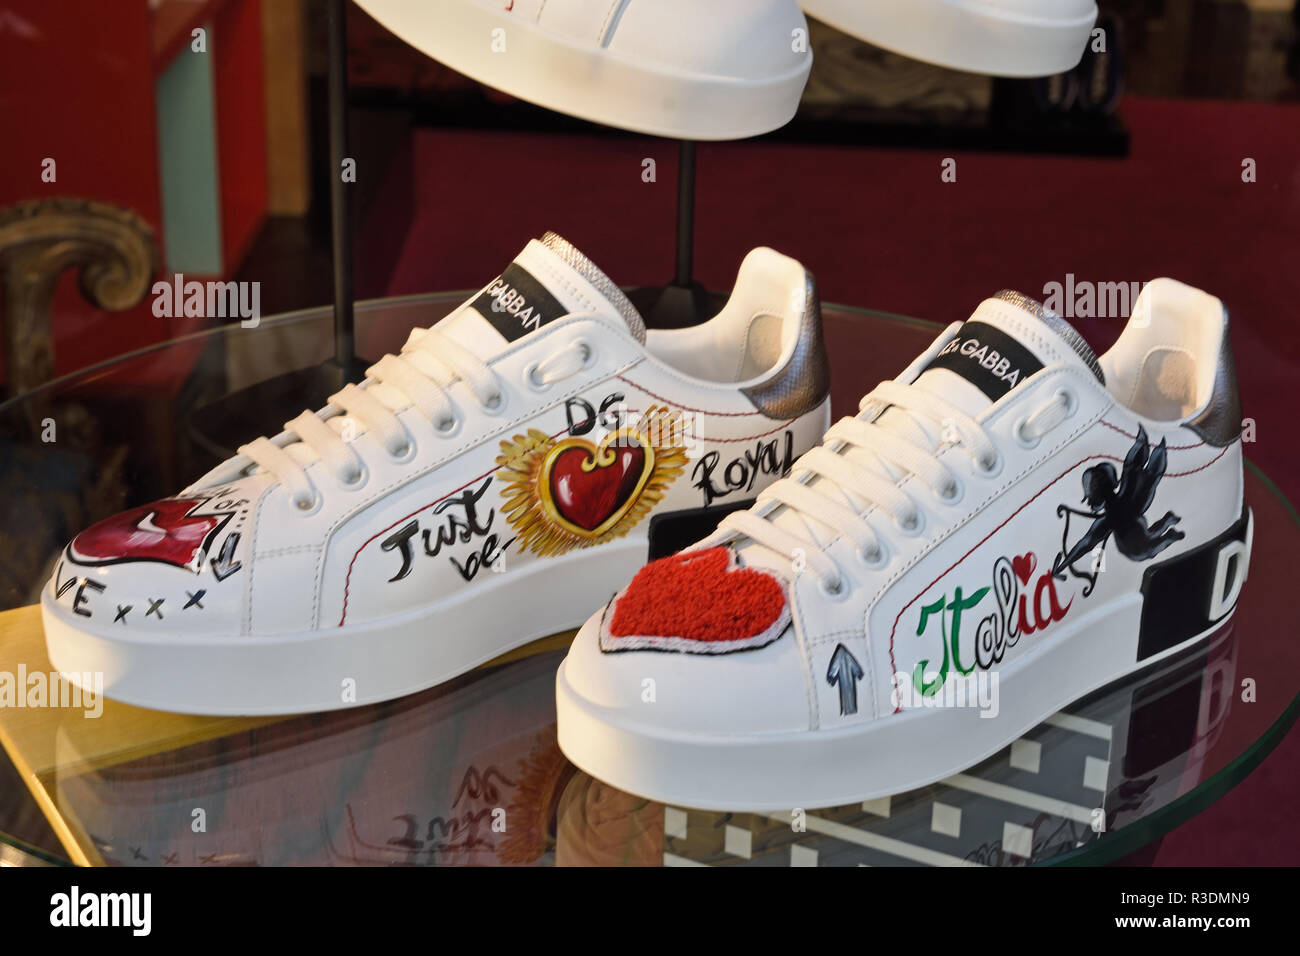 Dolce Gabbana Shoes  Milan Italy Italian Fashion window display, Milano fashion district, Italy Italian - Stock Image